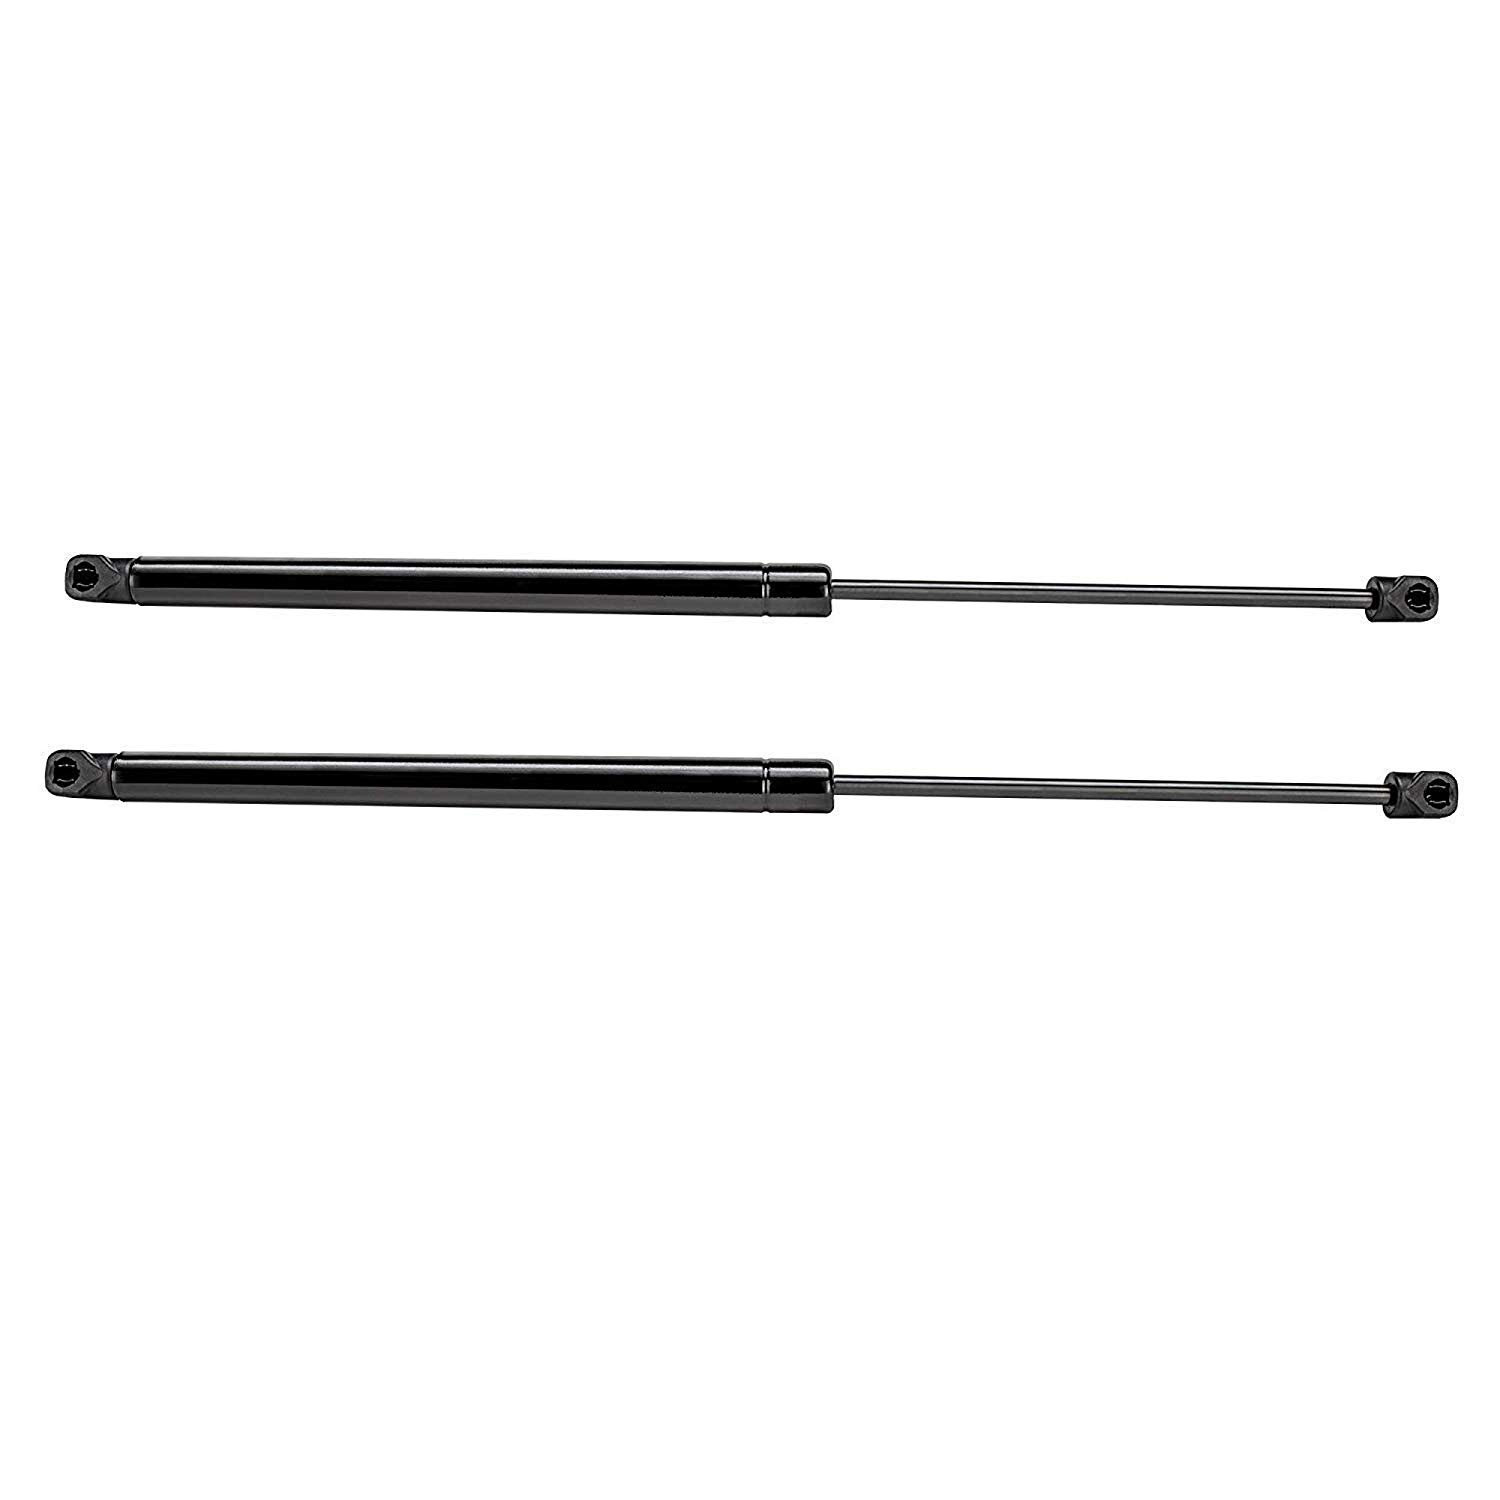 "Suspa C16-17796 C1617796 20"" Gas Prop, Quantity (2), Force 110 Lbs Per Prop, Force Per Set 220 Lbs, Camper Rear Window, Tonneau Cover Lift Supports, Window Lift Support, Struts, Made in USA"